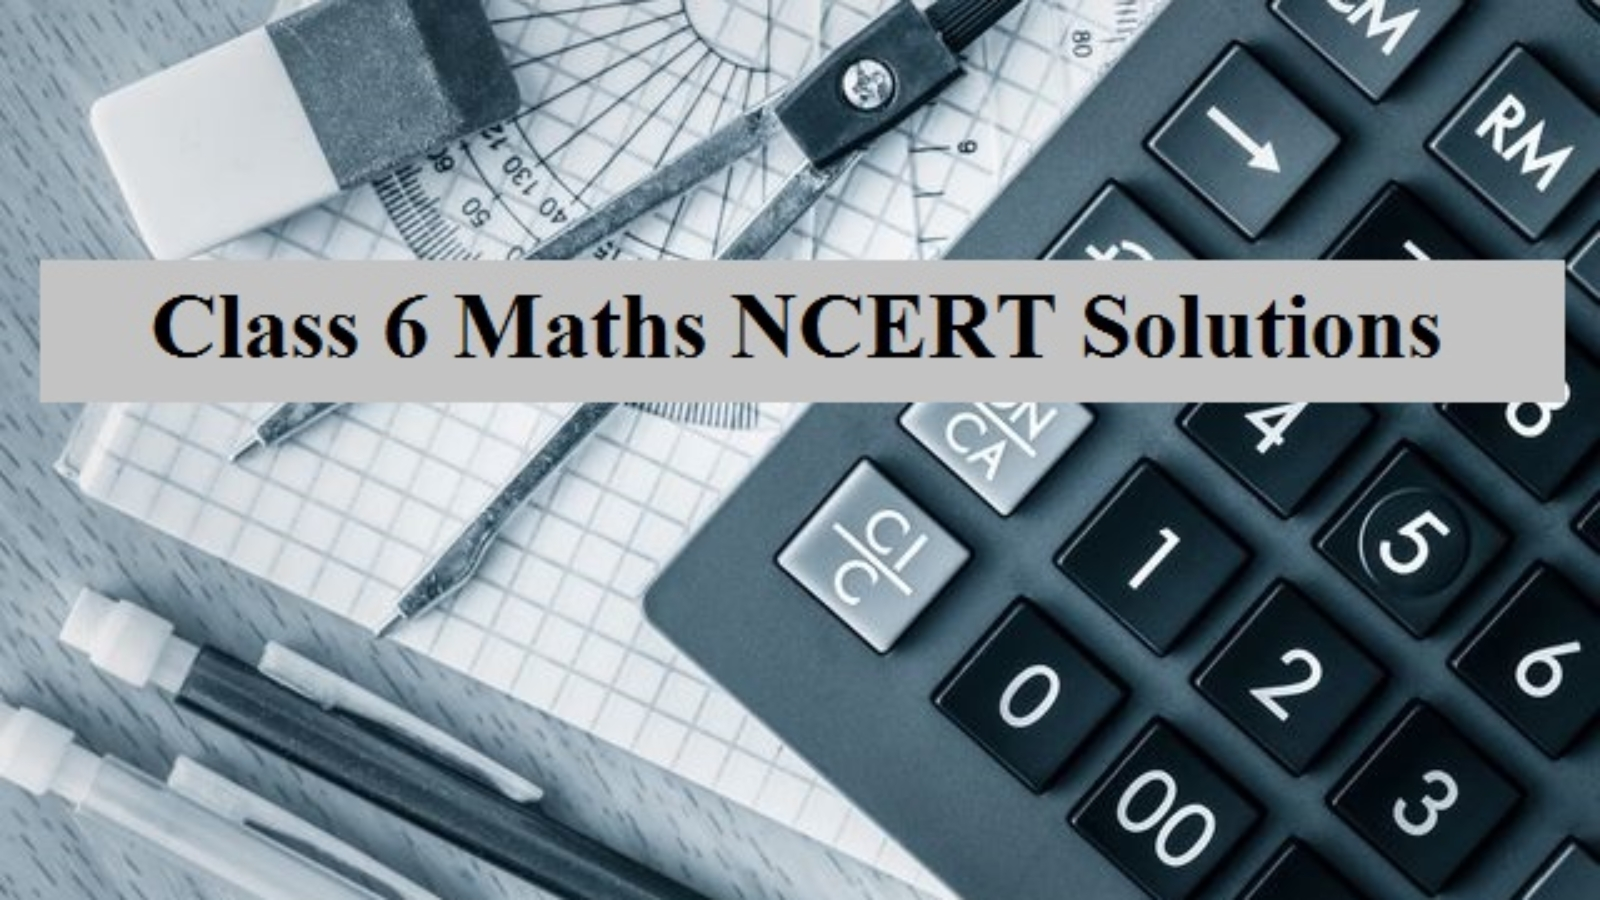 NCERT Books PDF Download for FREE